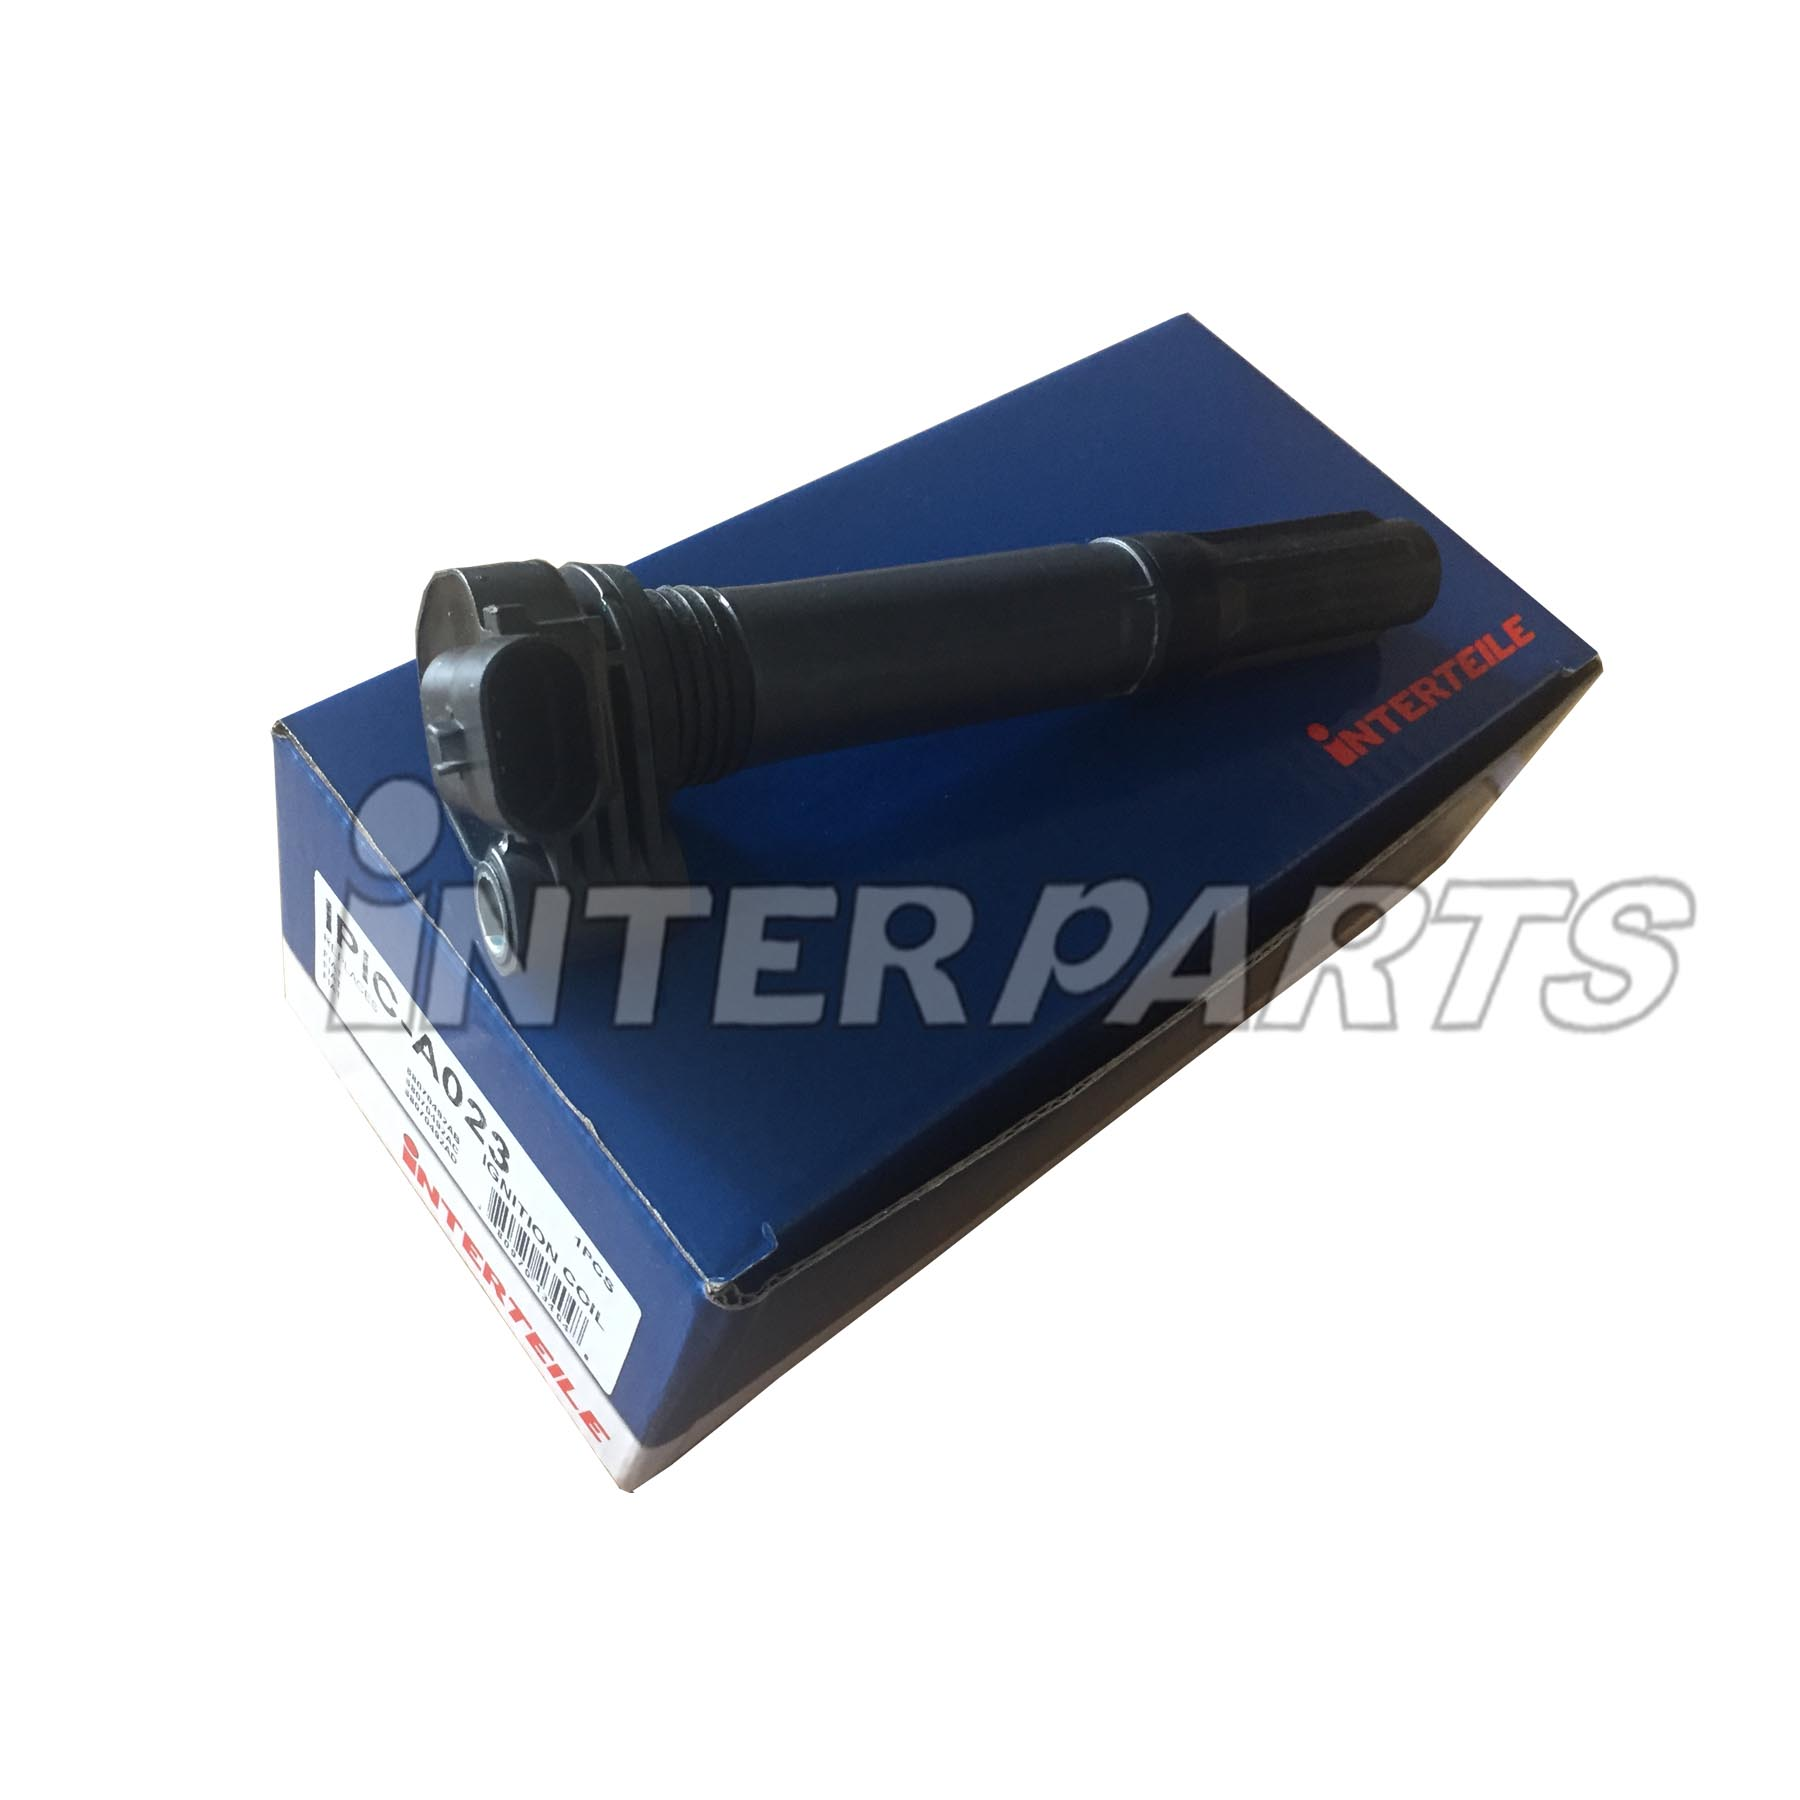 FIAT 호환 IGNITION COIL 68070492AB IPIC-A023